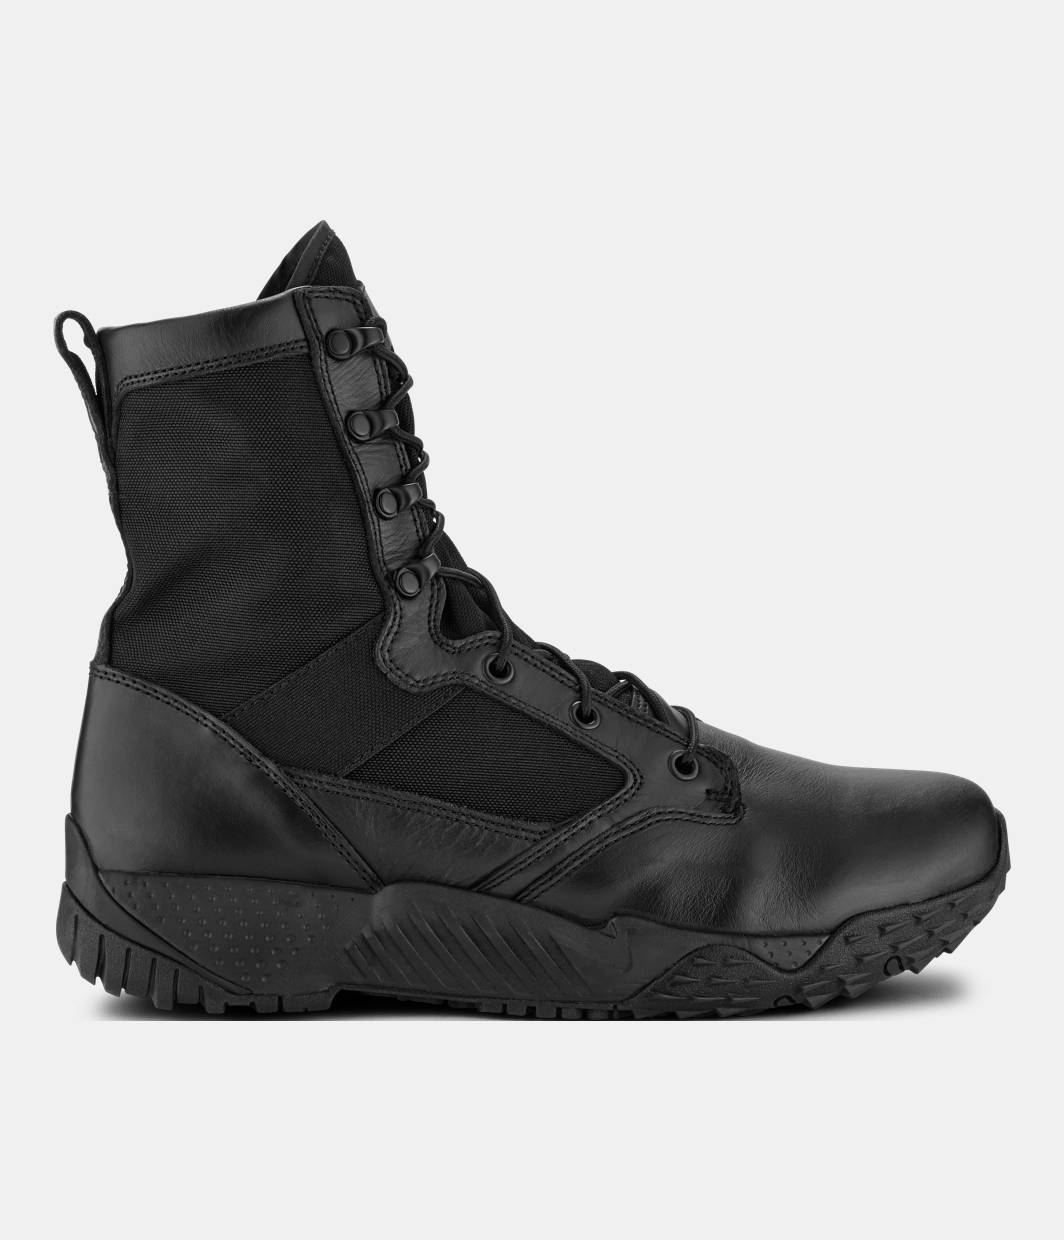 ed1f7276a26 Men's Military & Tactical Boots | Under Armour US